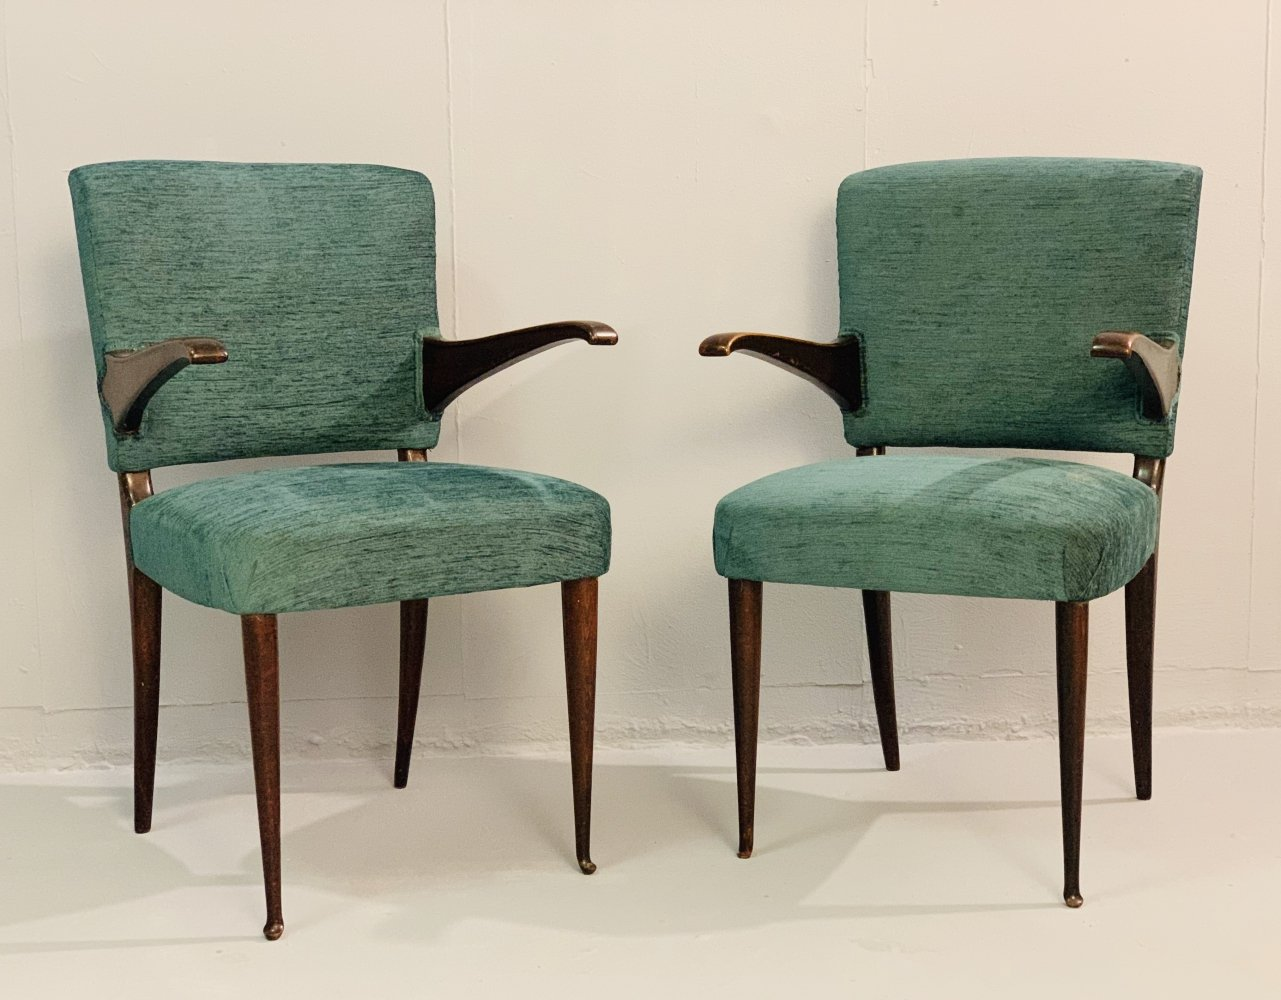 Pair of Italian Armchairs by Guglielmo Ulrich, 1950s